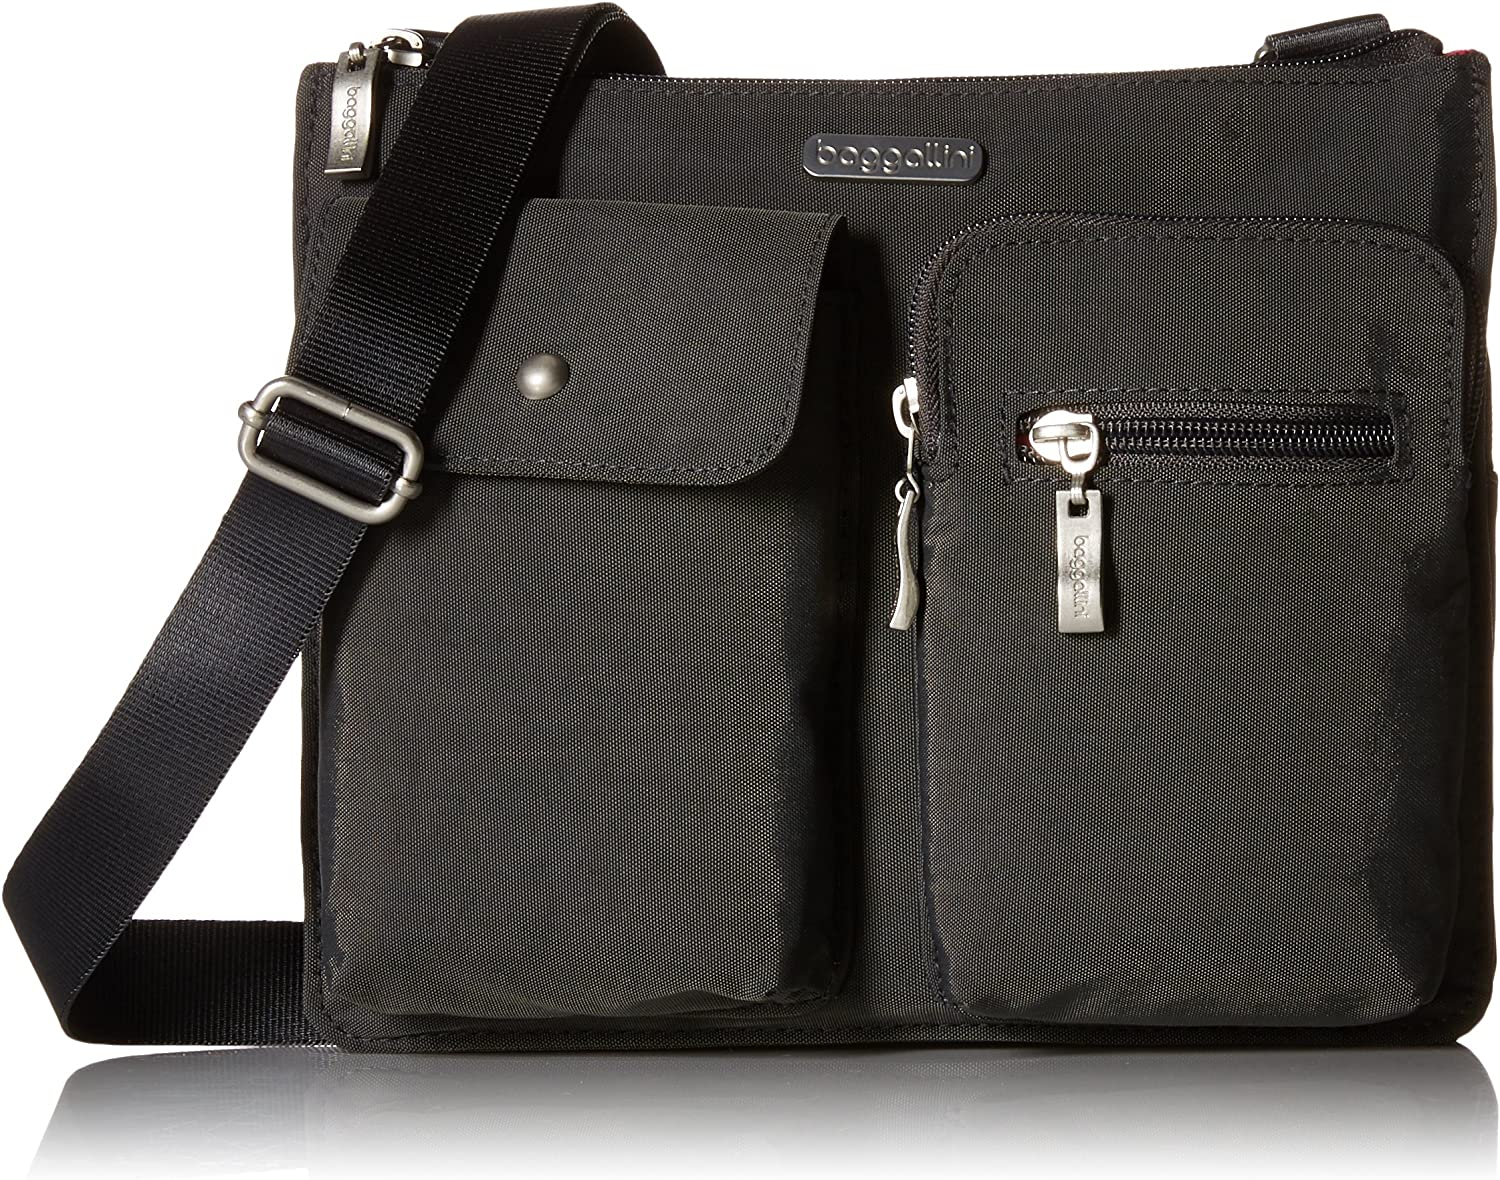 Baggallini Everything Crossbody Bag – Slim and Sleek, Lightweight, Multi-Pocketed Travel Bag with Removable Wristlet